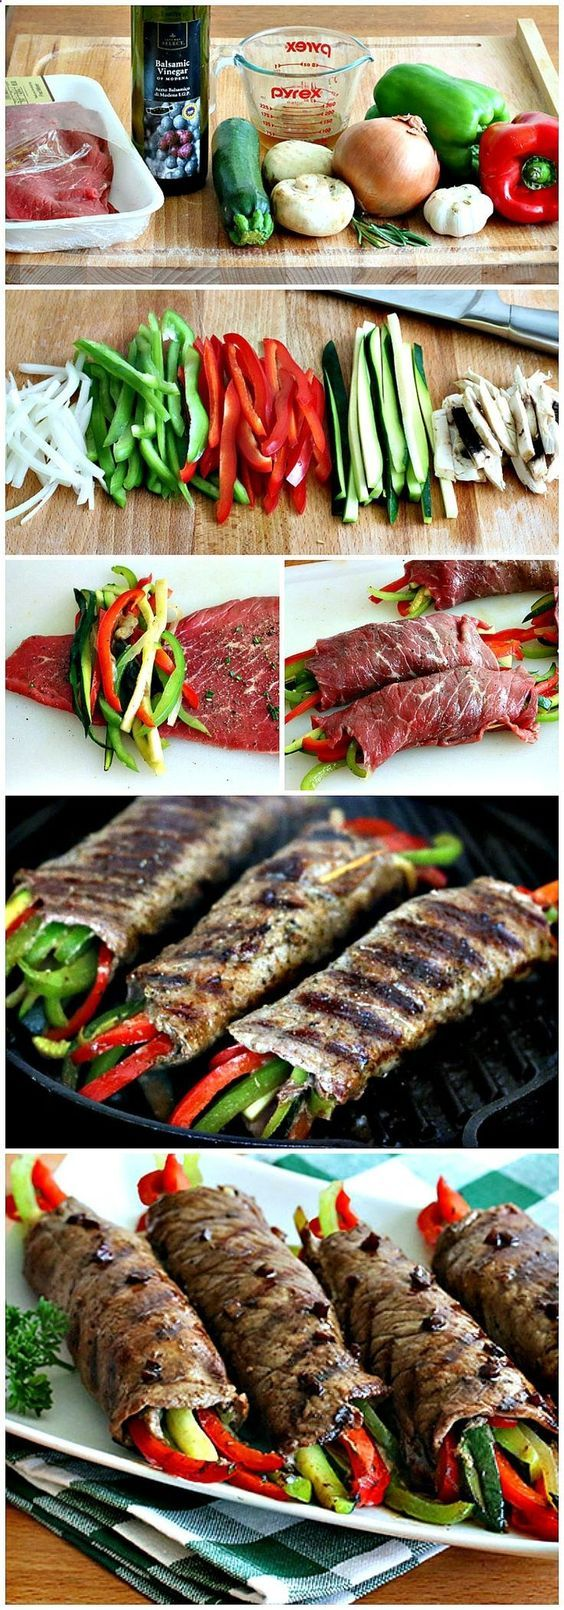 Steak Filled With Veggies   Use Organic Veggies   East Recipe   Healthy Recipe   Clean Eating Approved